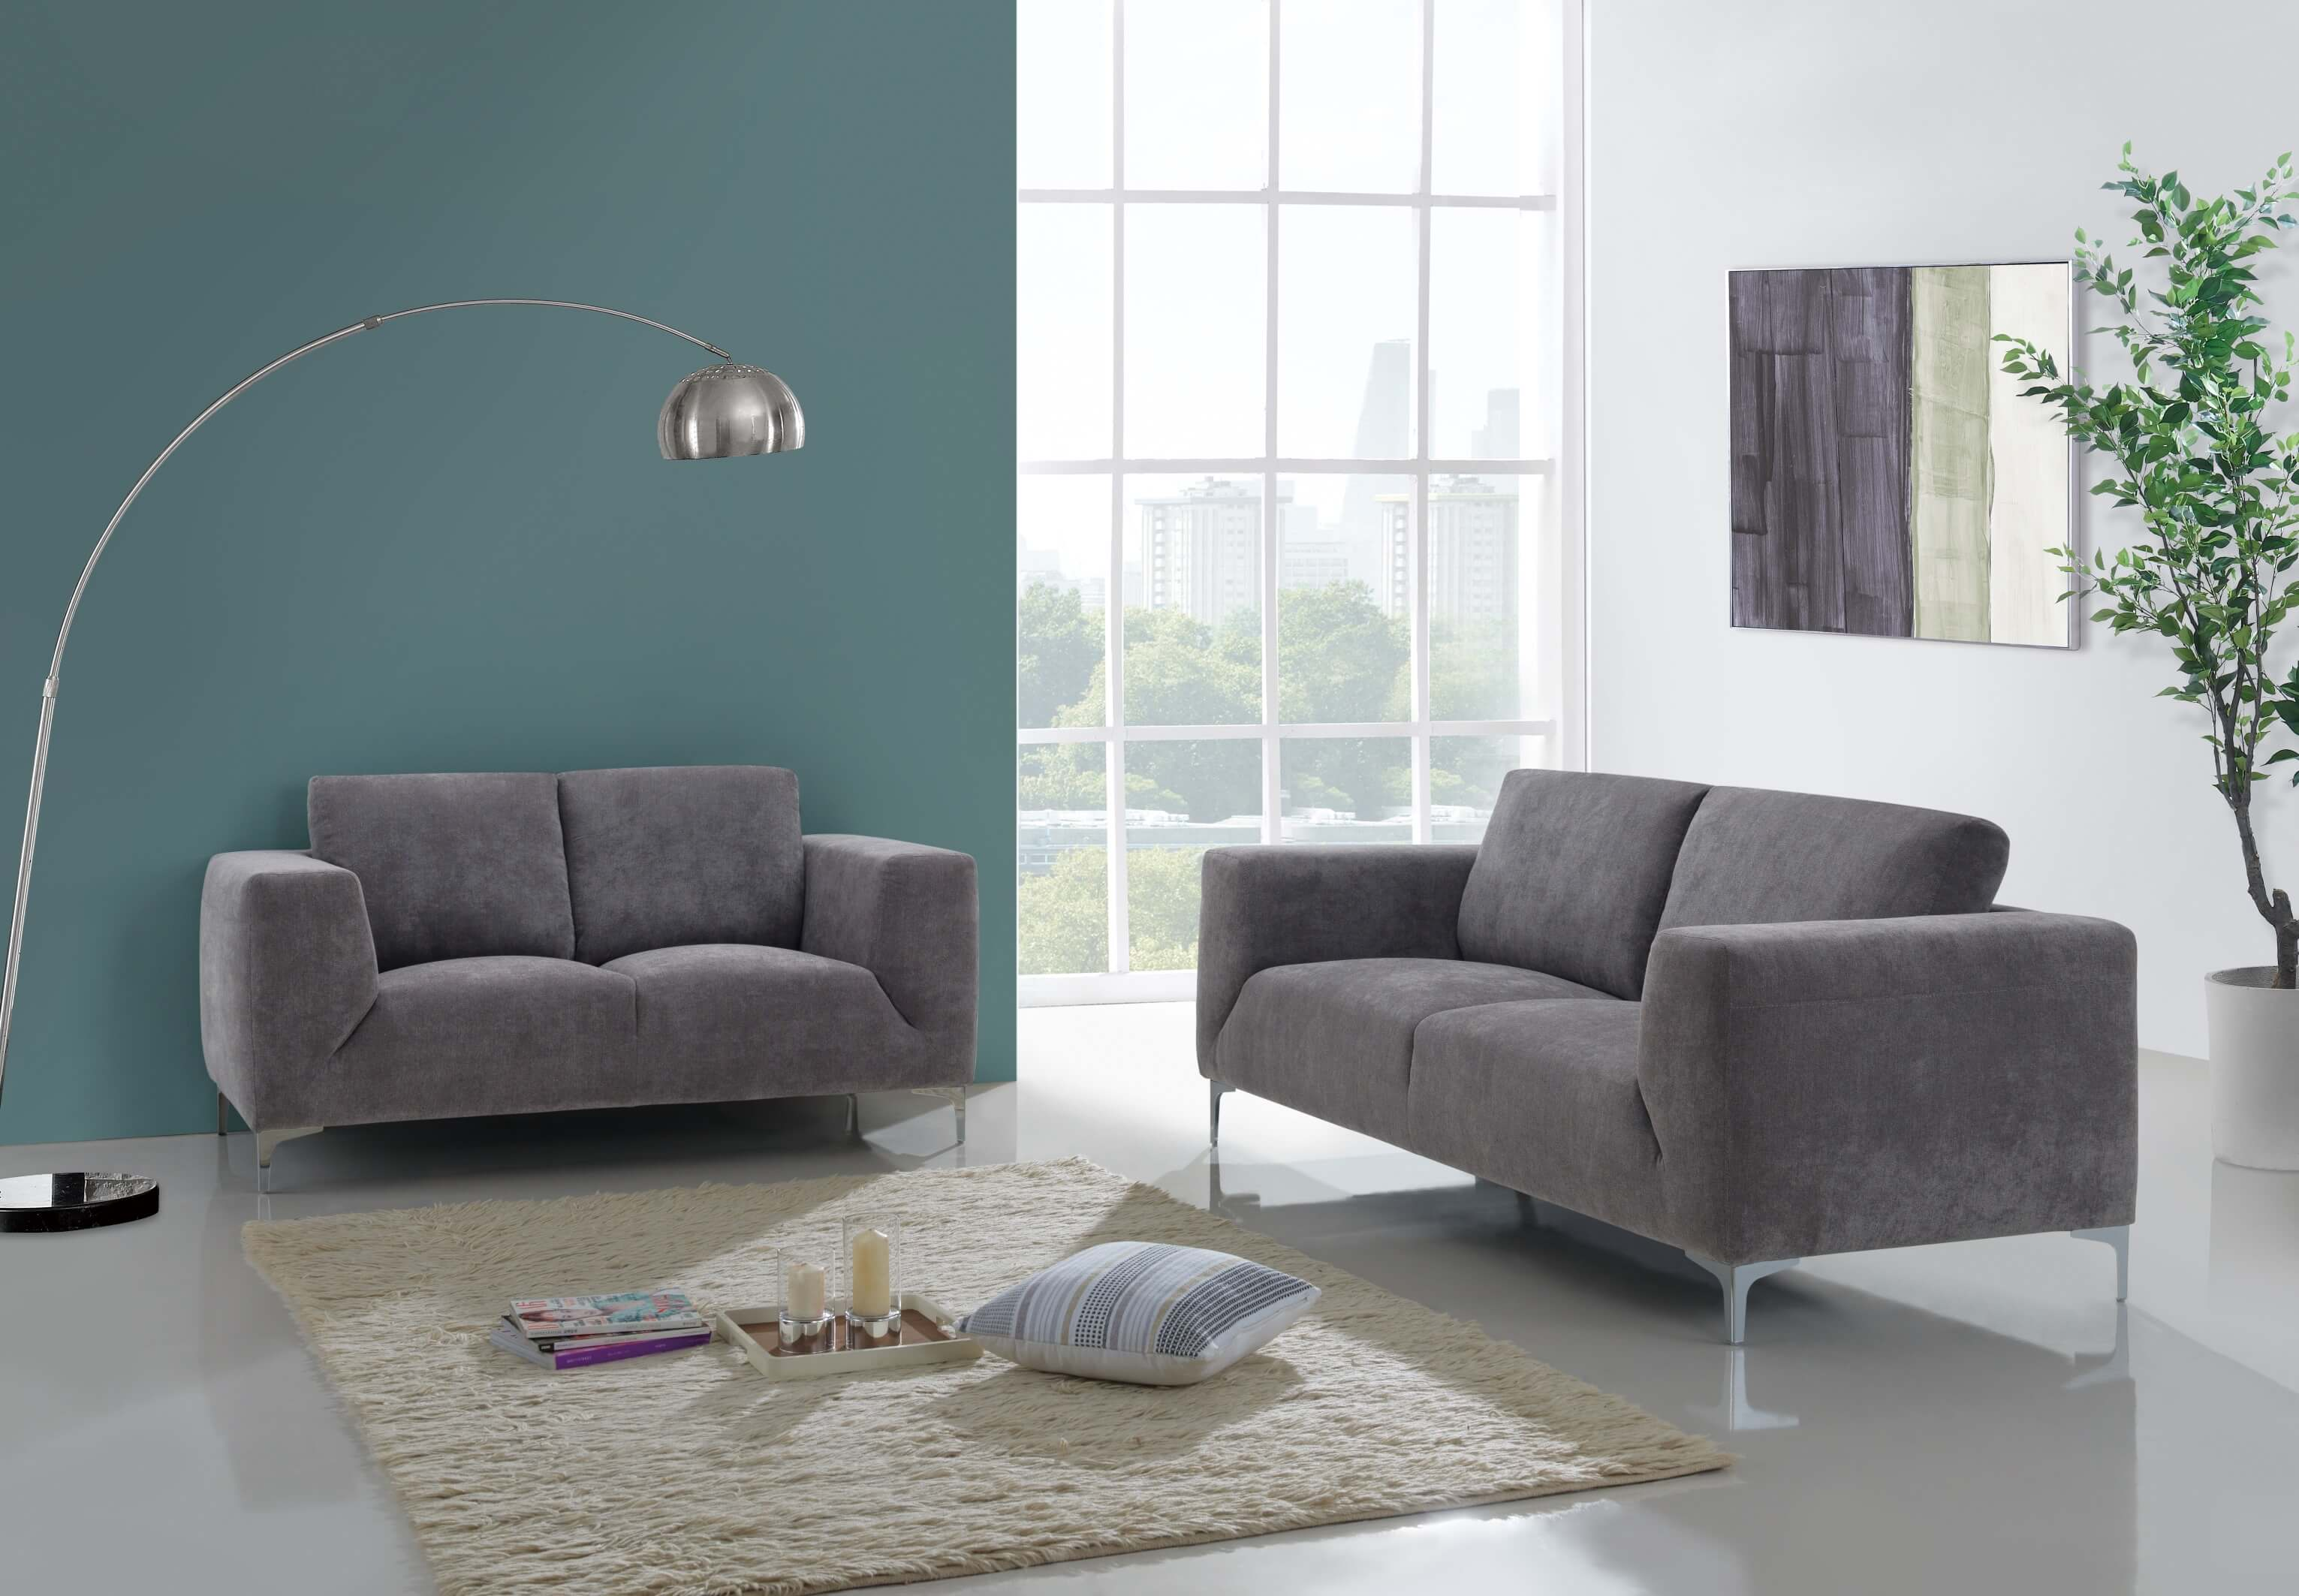 Barlow White Leather Sofa And Loveseat Set Contemporary Sofa And Loveseat Set Baci Living Room